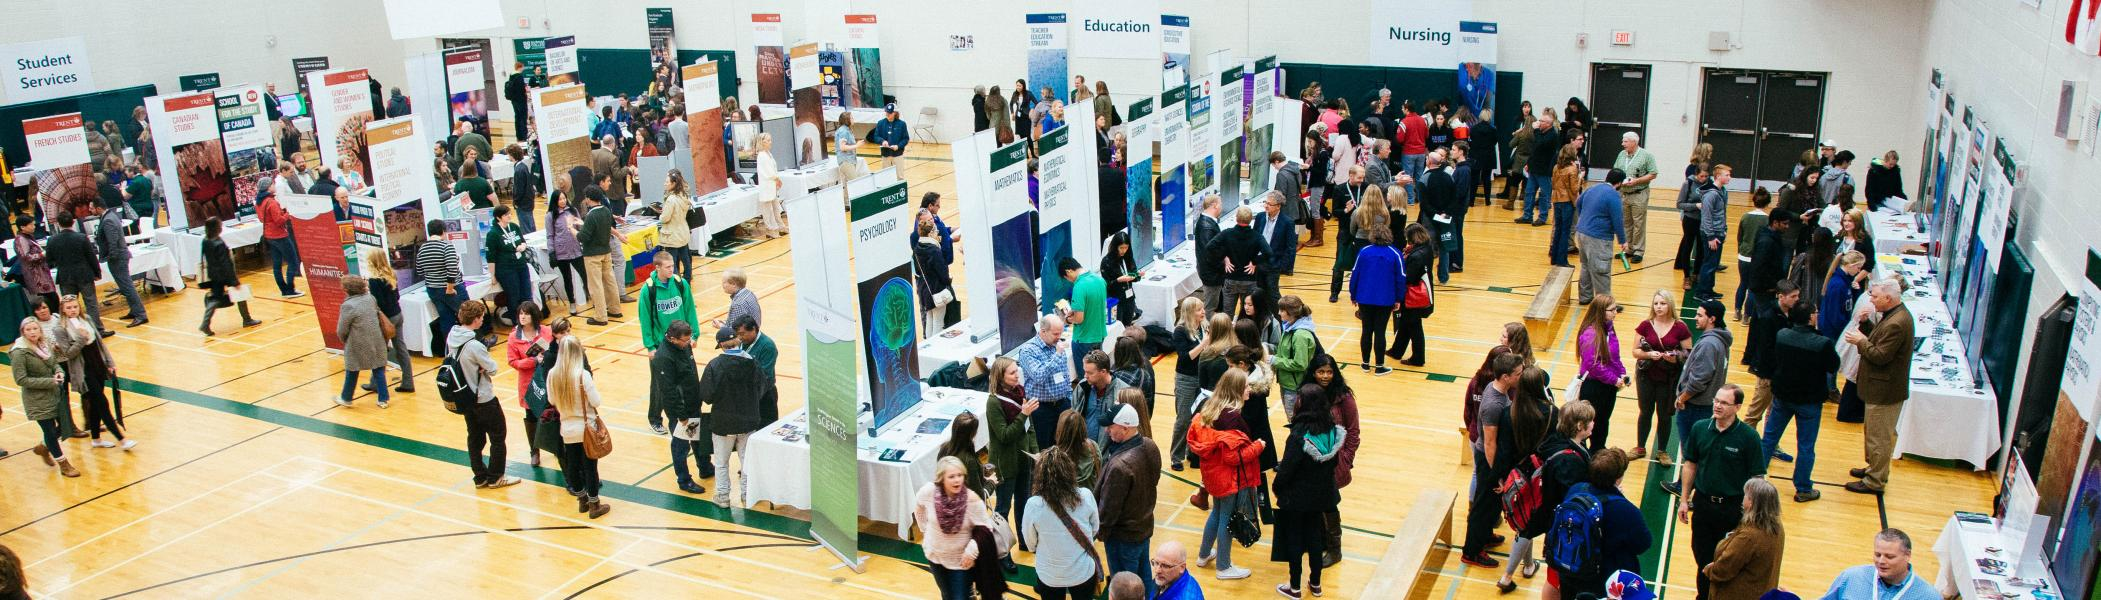 A busy student services fair during the open house at the Athletics Complex